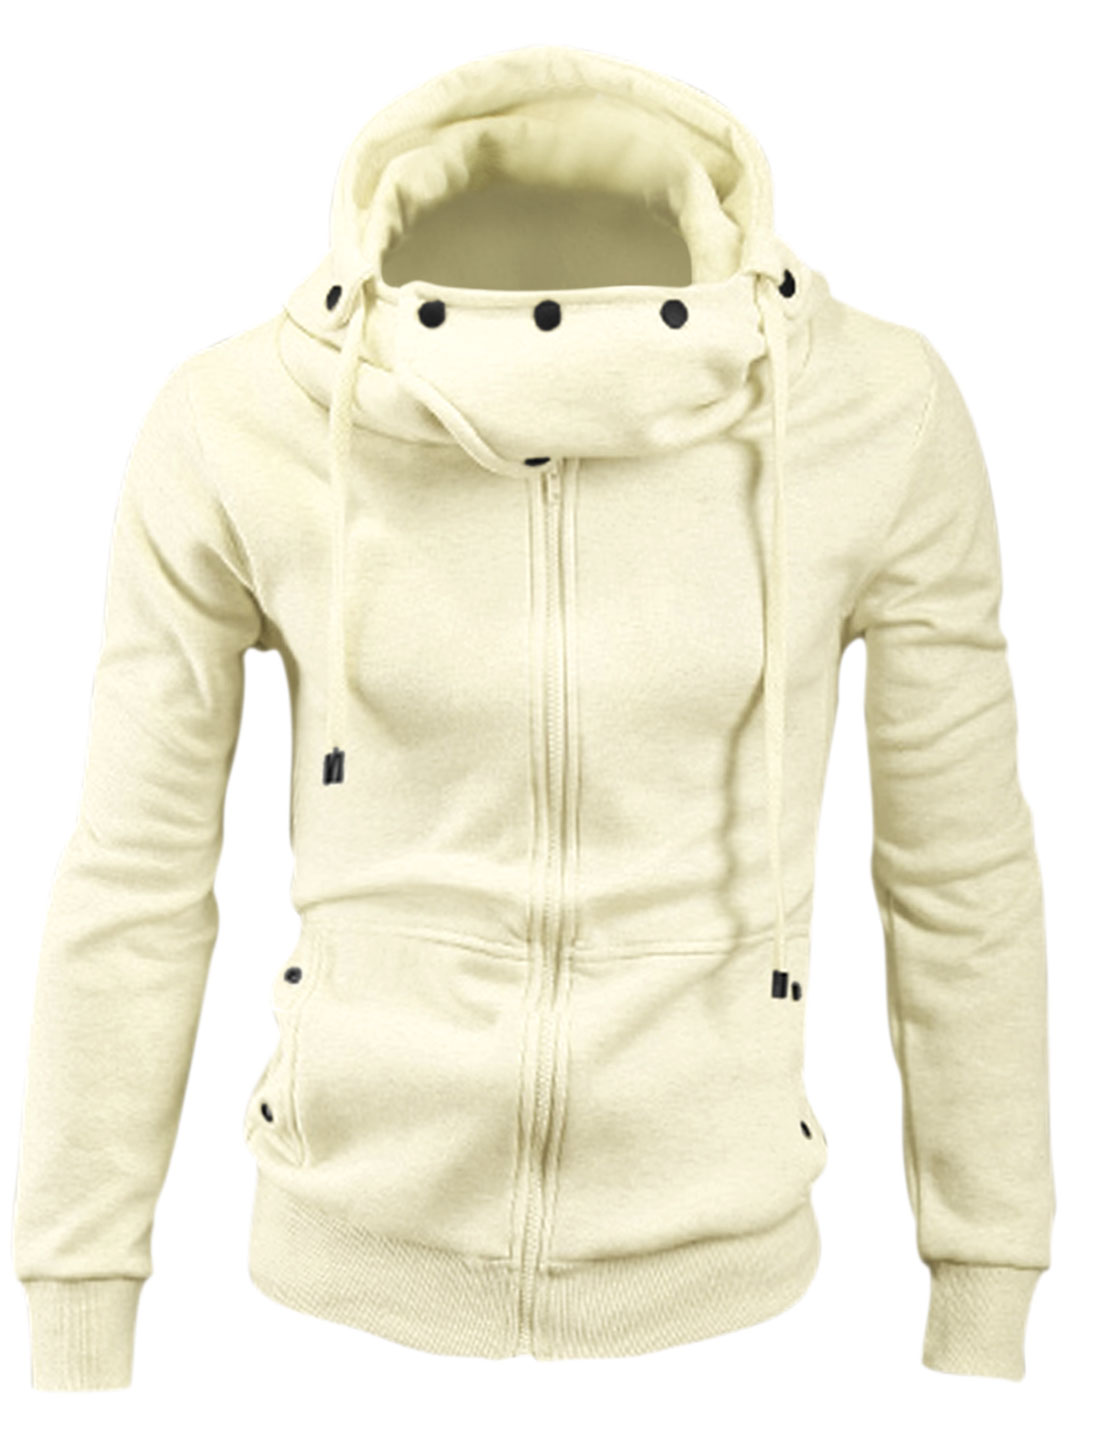 New Style Leisure Convertible Collar Zipper Closure Hoodie for Men Beige M